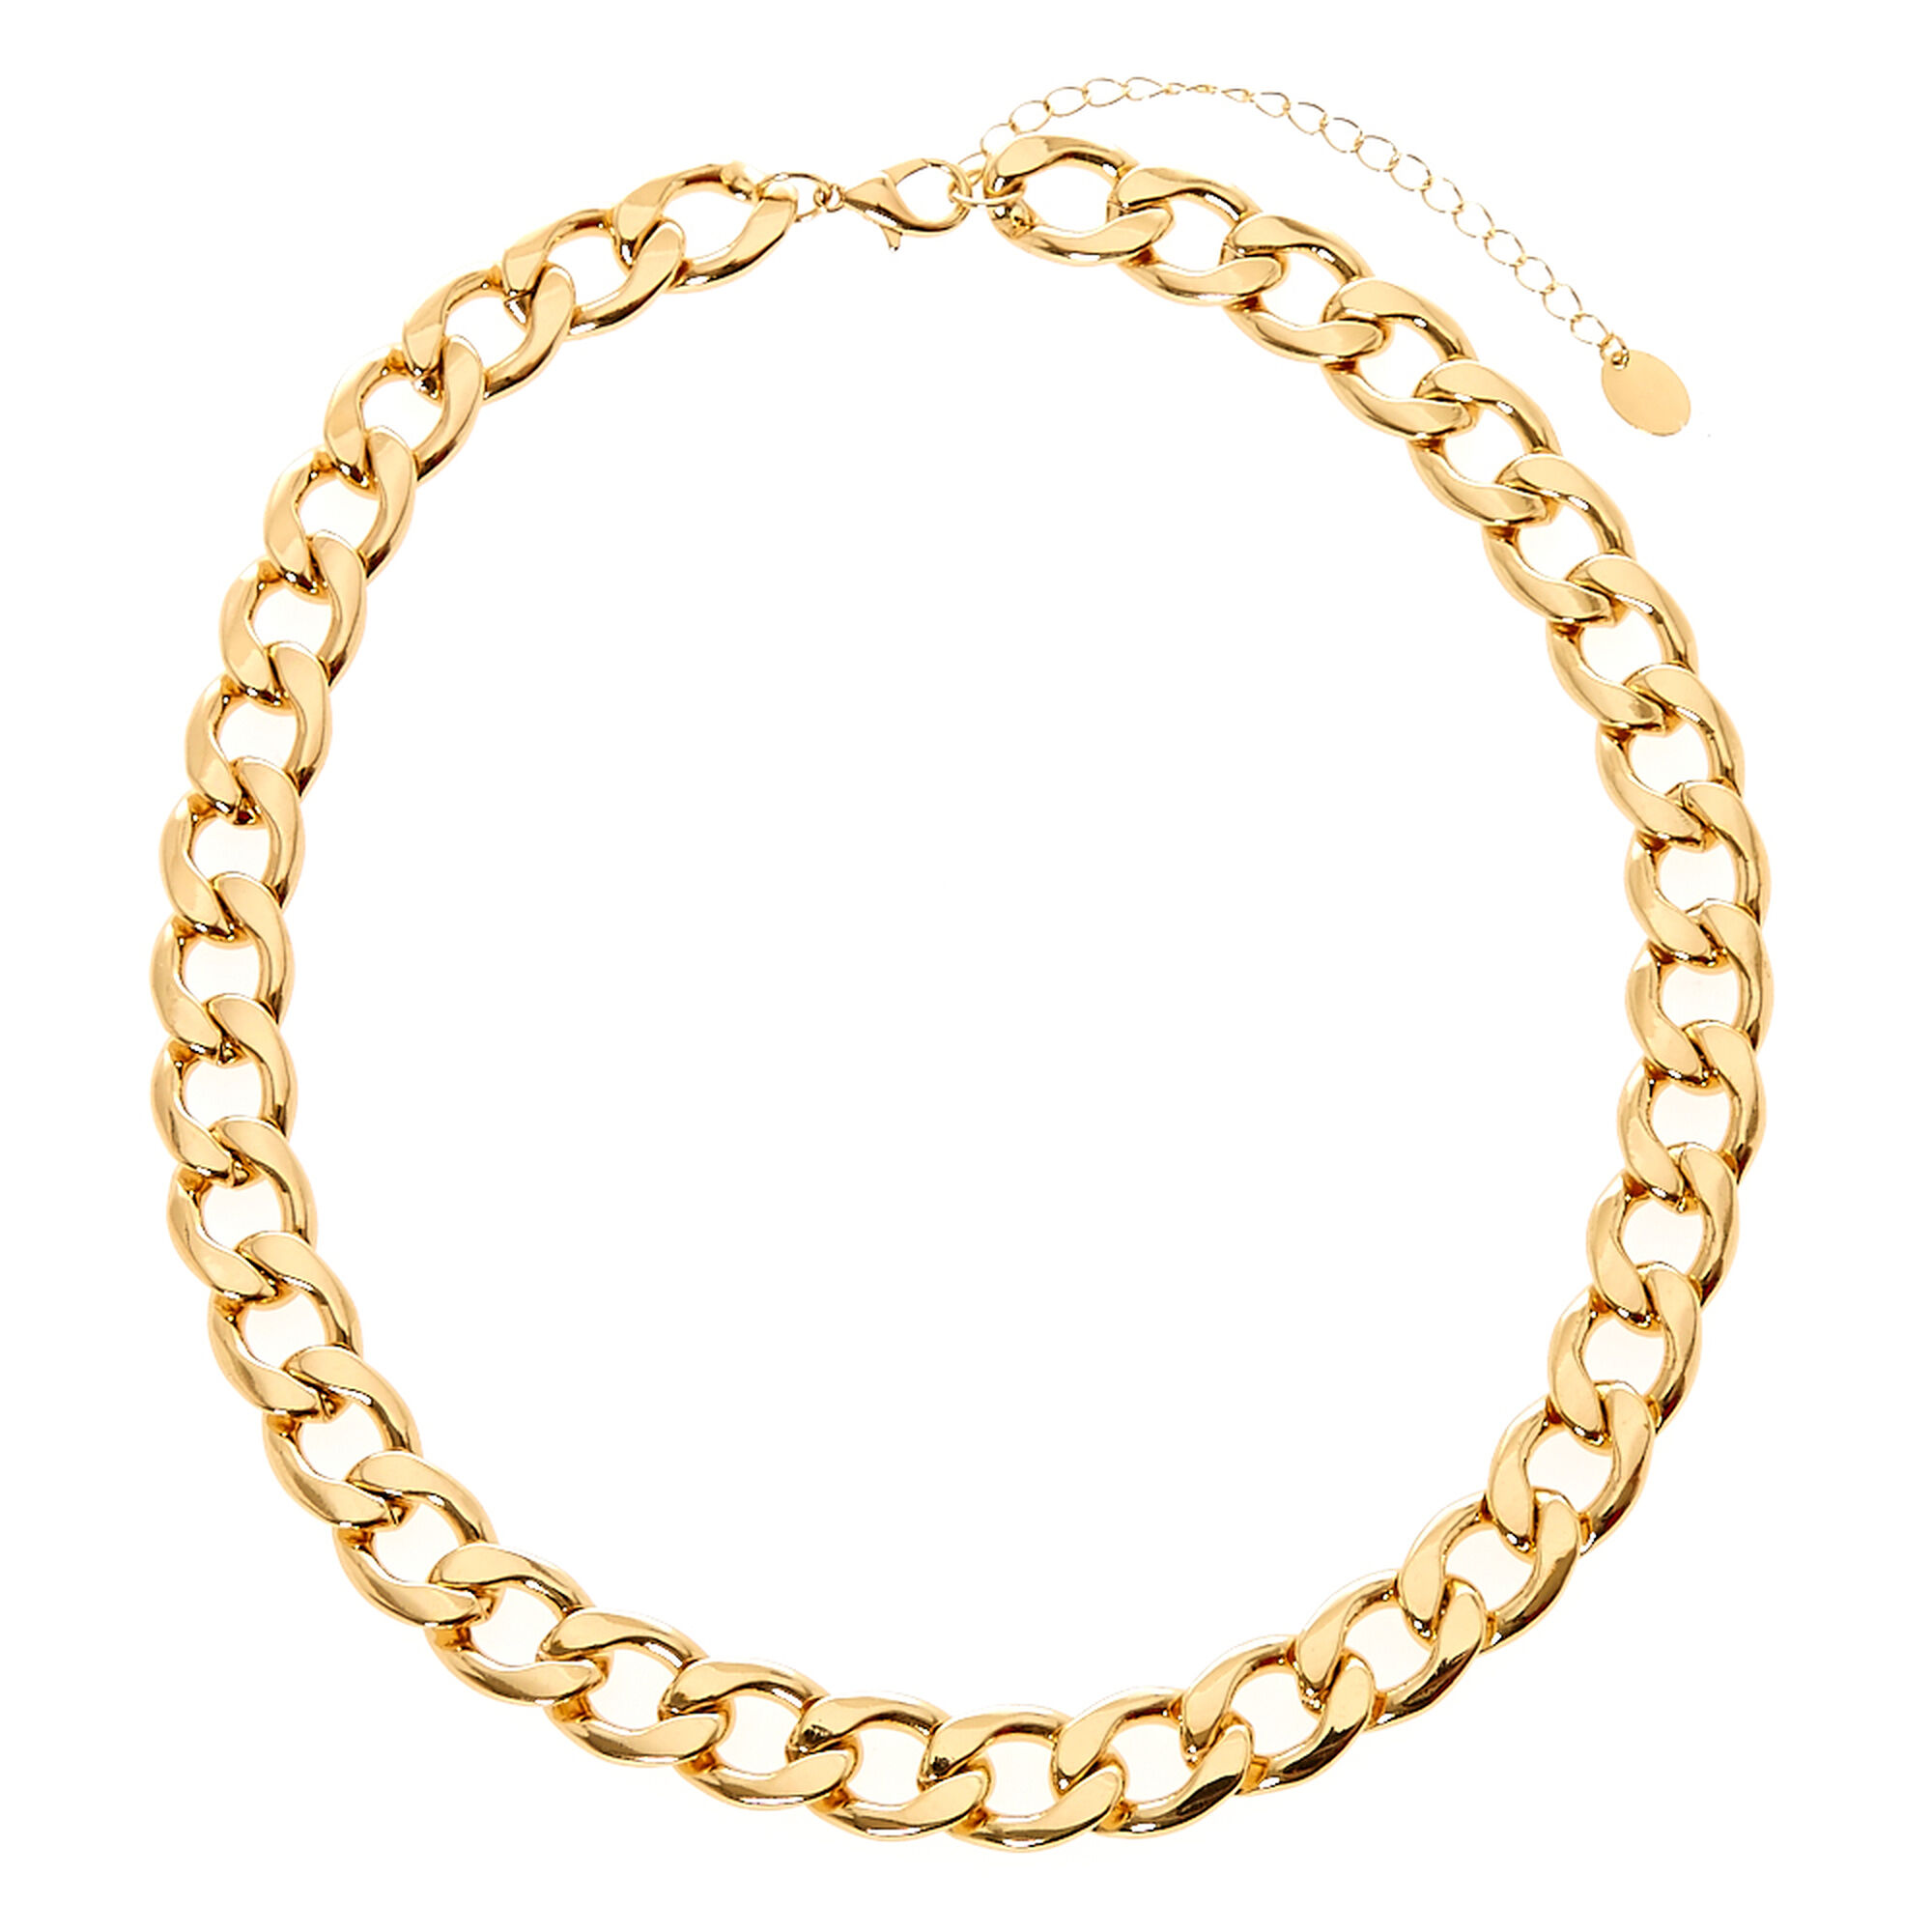 Gold chain for sale best chain 2018 for Best mens jewelry sites